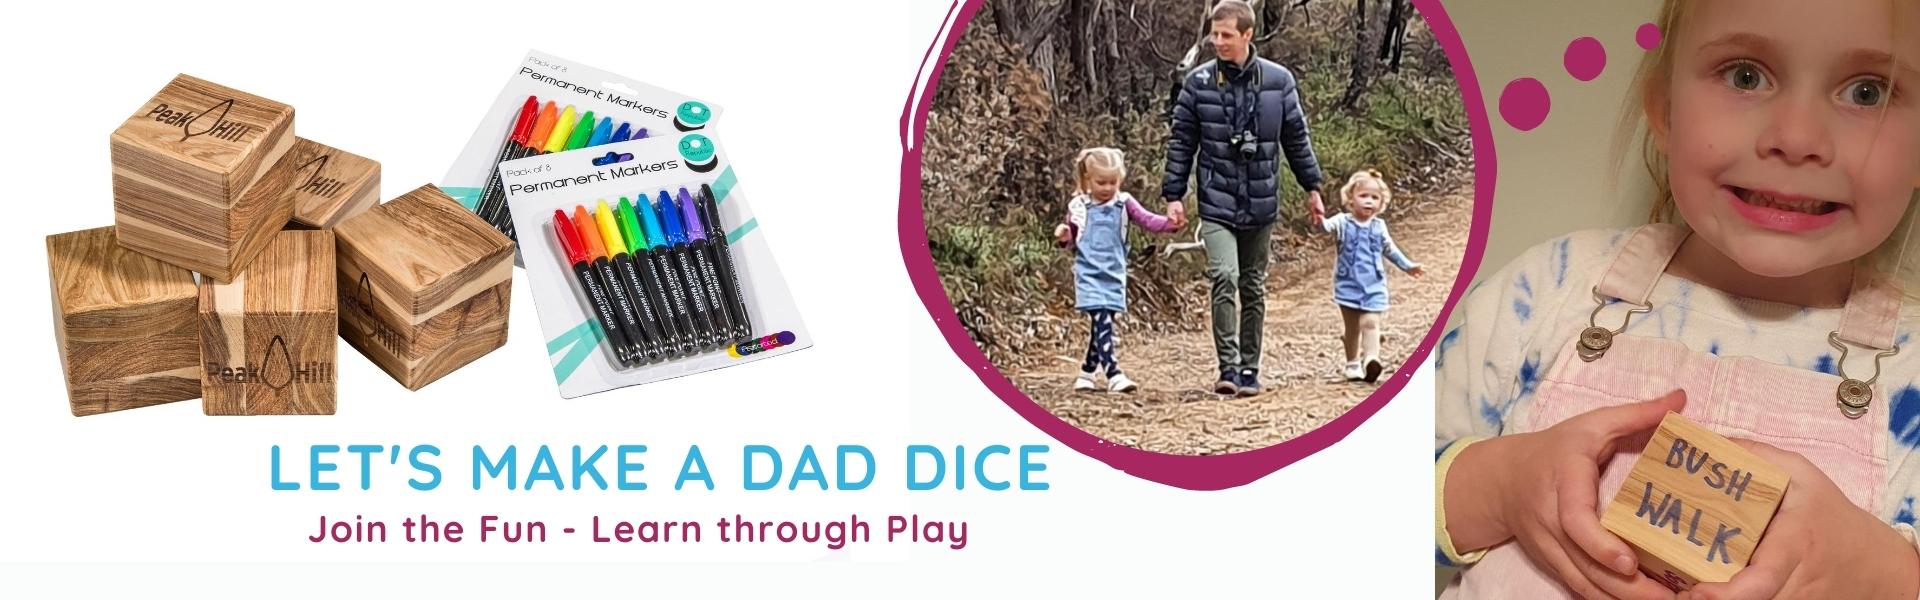 Let's make a Dads Dice